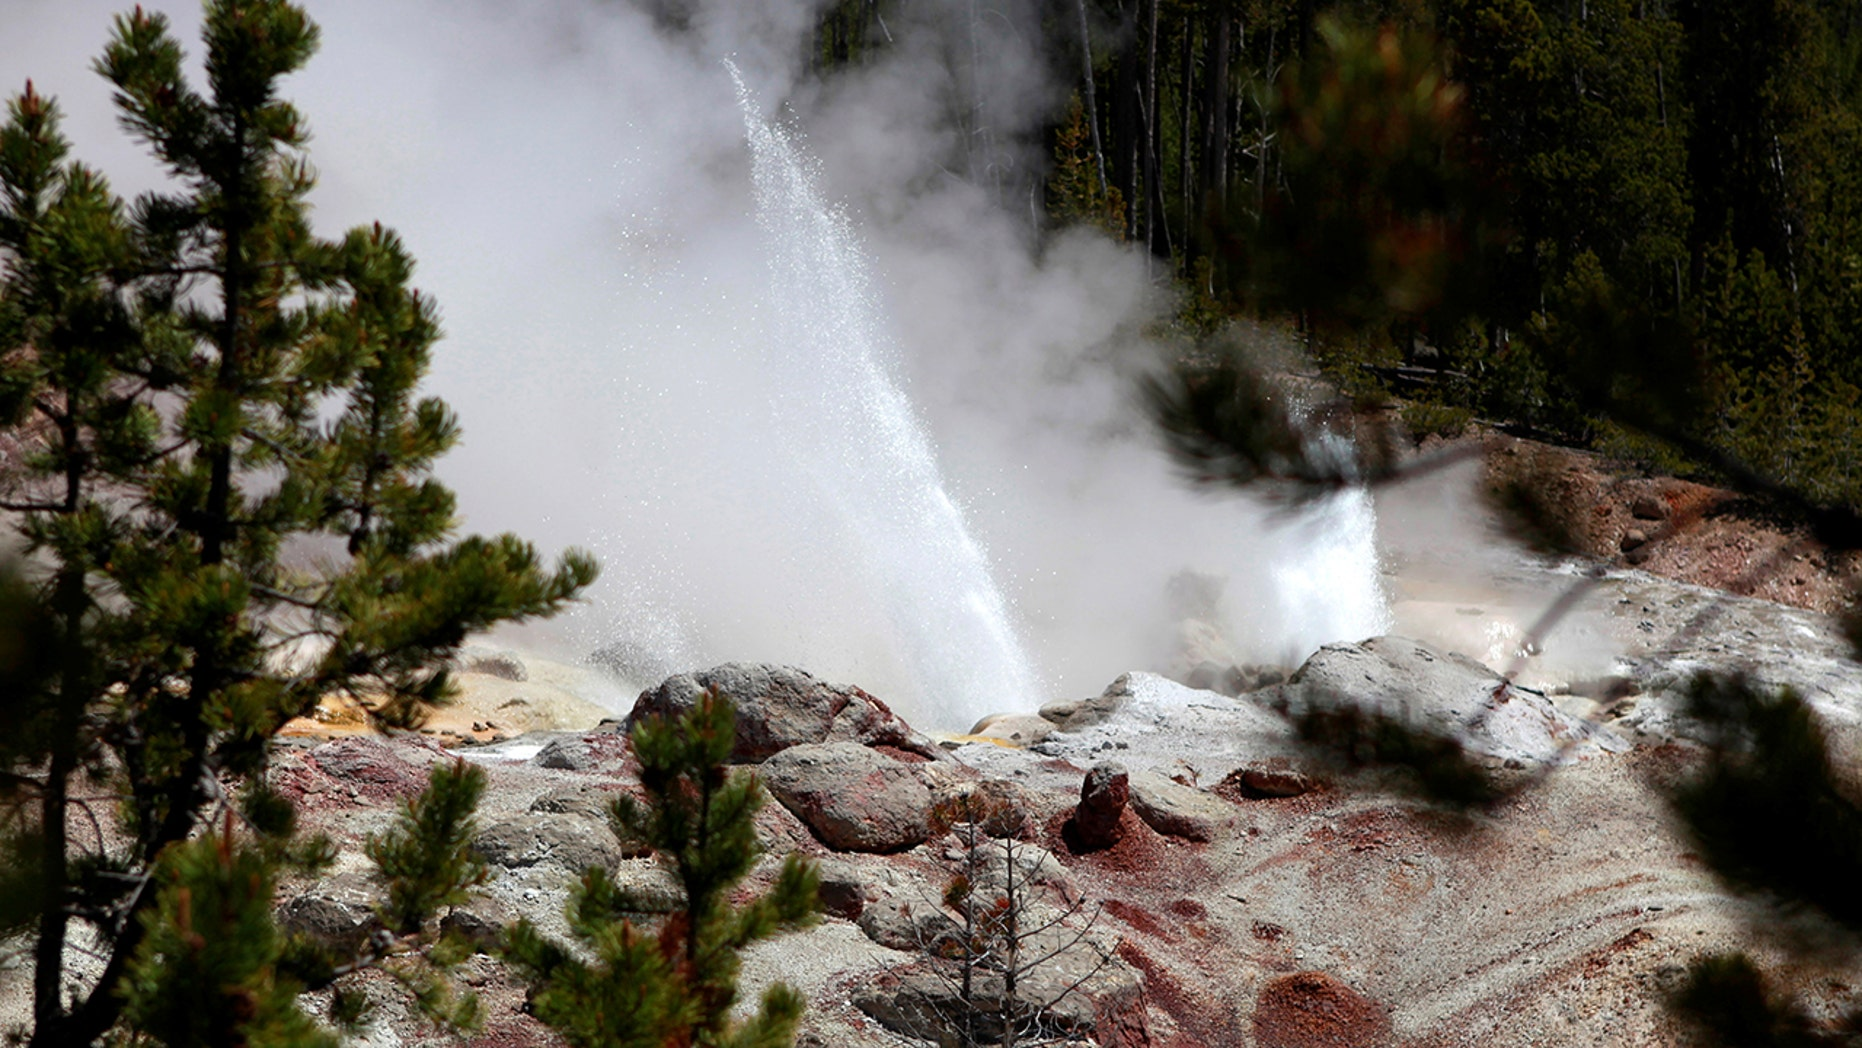 FILE: The Steamboat Geyser erupts in Yellowstone National Park, Wyoming, June 21, 2011.